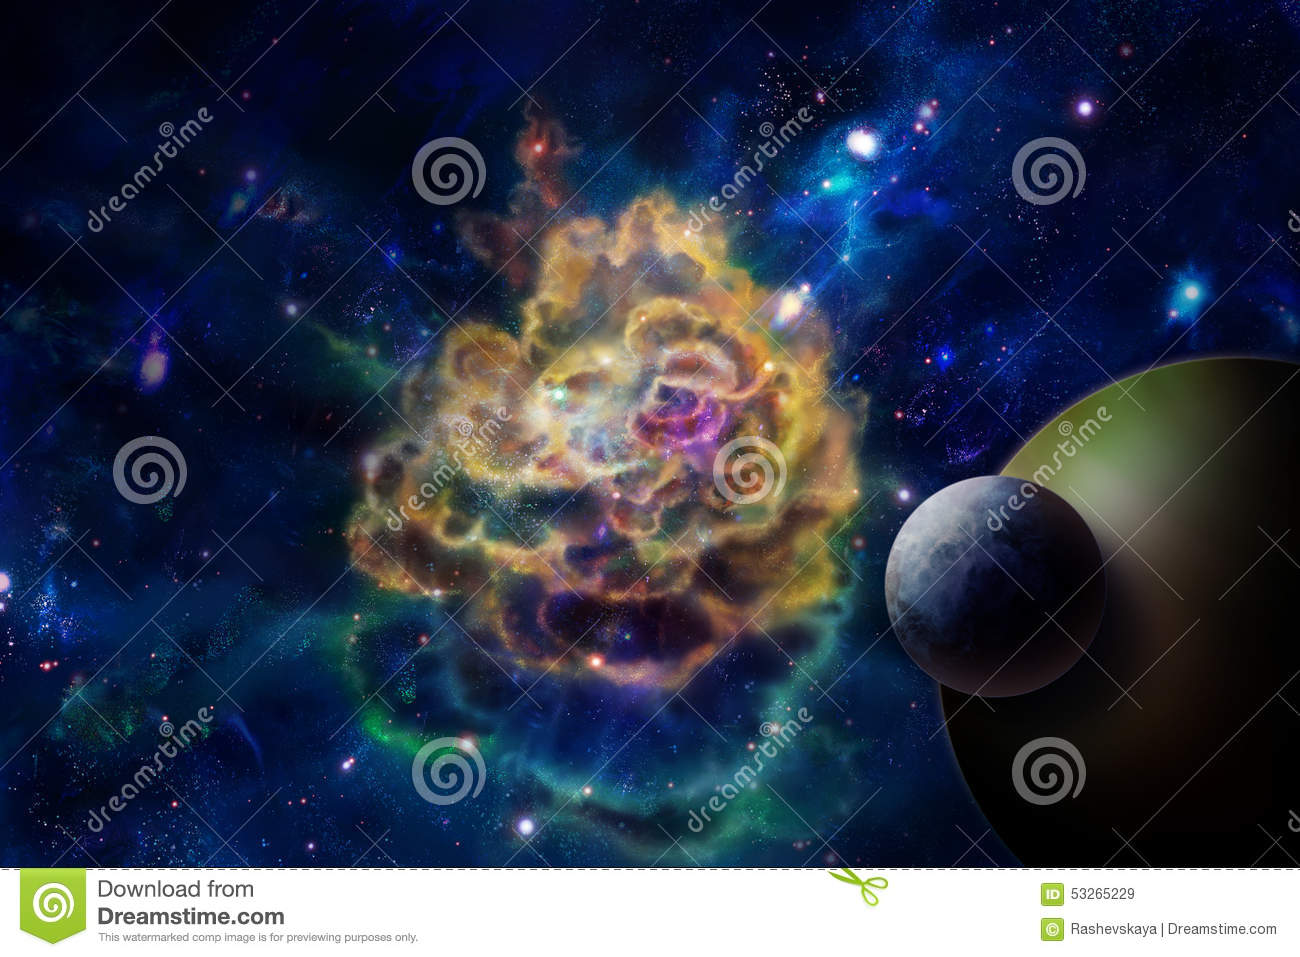 Molecular cloud and a planet